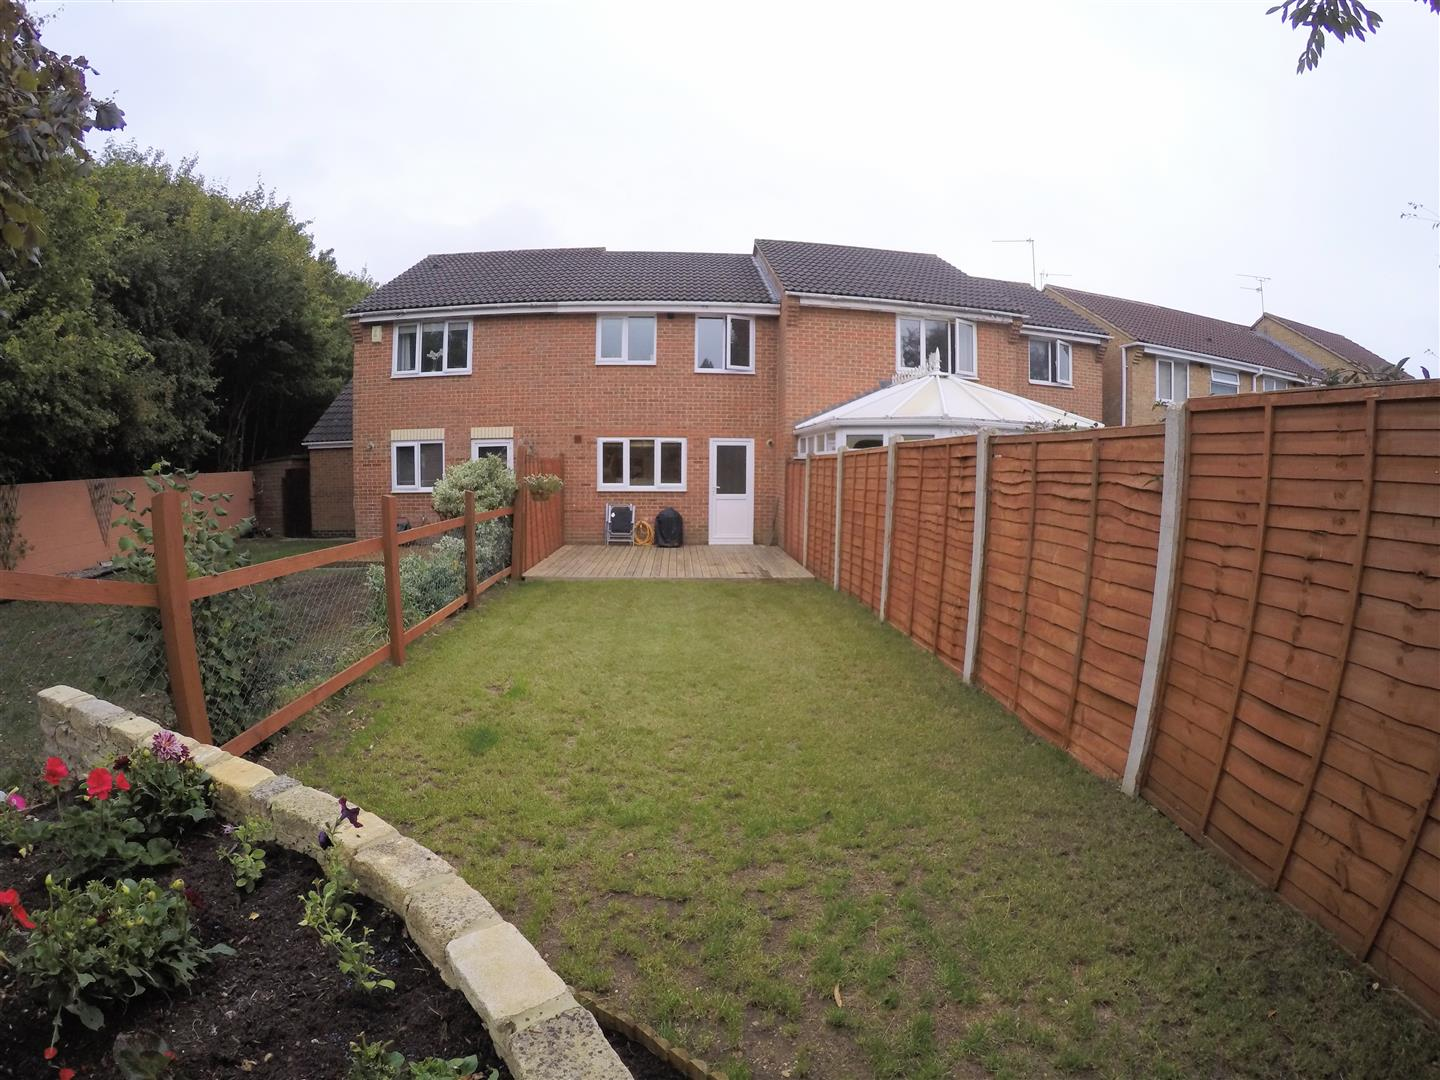 2 Bedrooms Terraced House for sale in Loveridge Close, Upper Stratton, Swindon